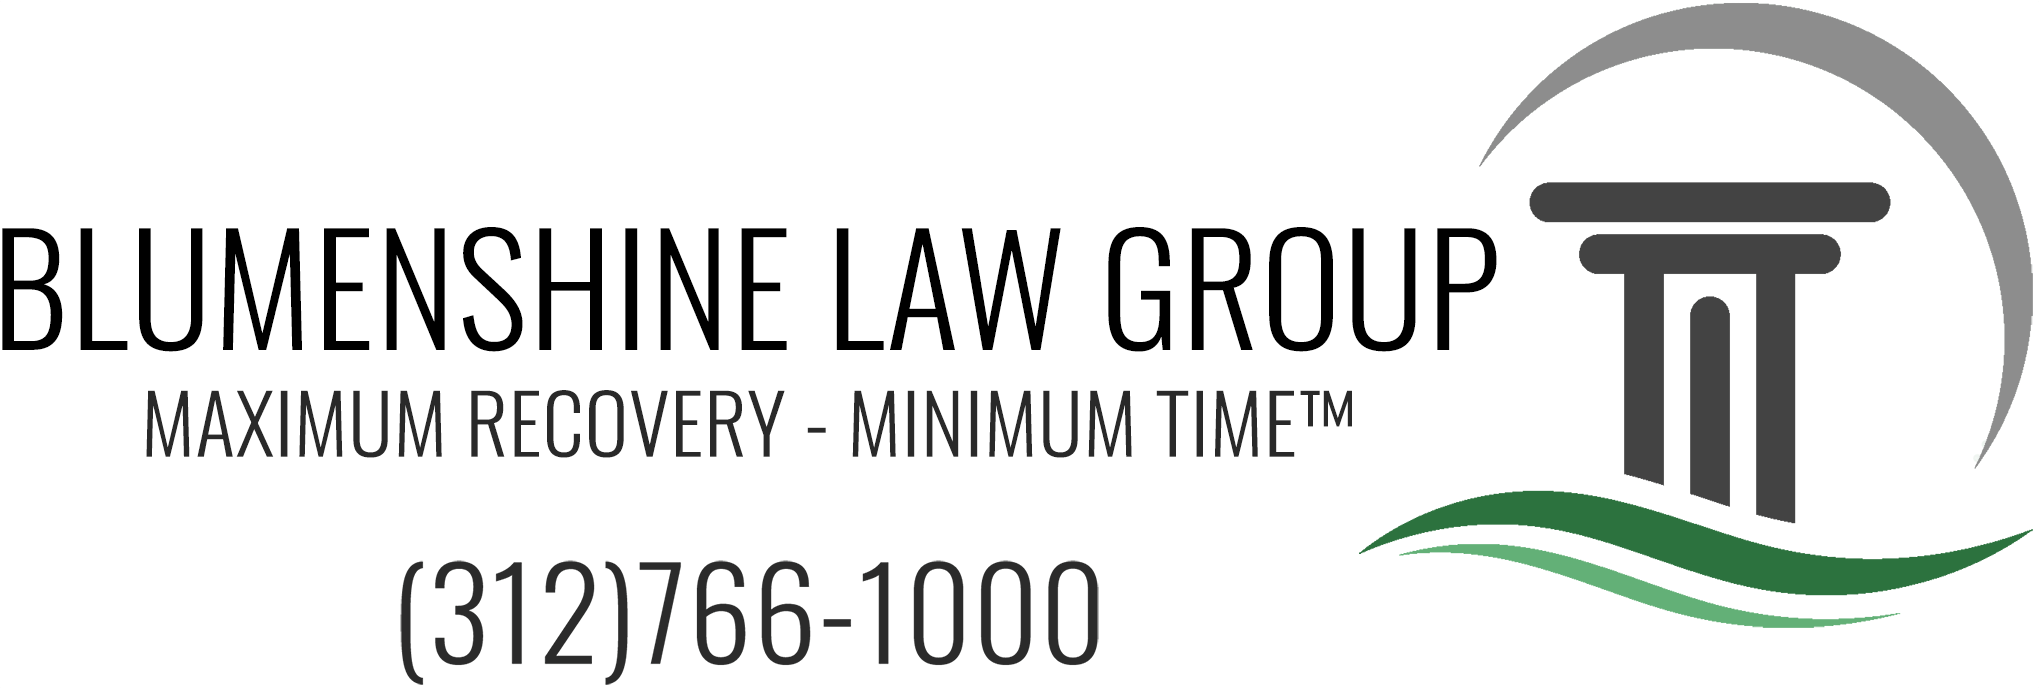 Blumenshine Law Group is a Car Accident Law Firm With Over Three Decades of Experience Representing Clients in Chicago, Illinois